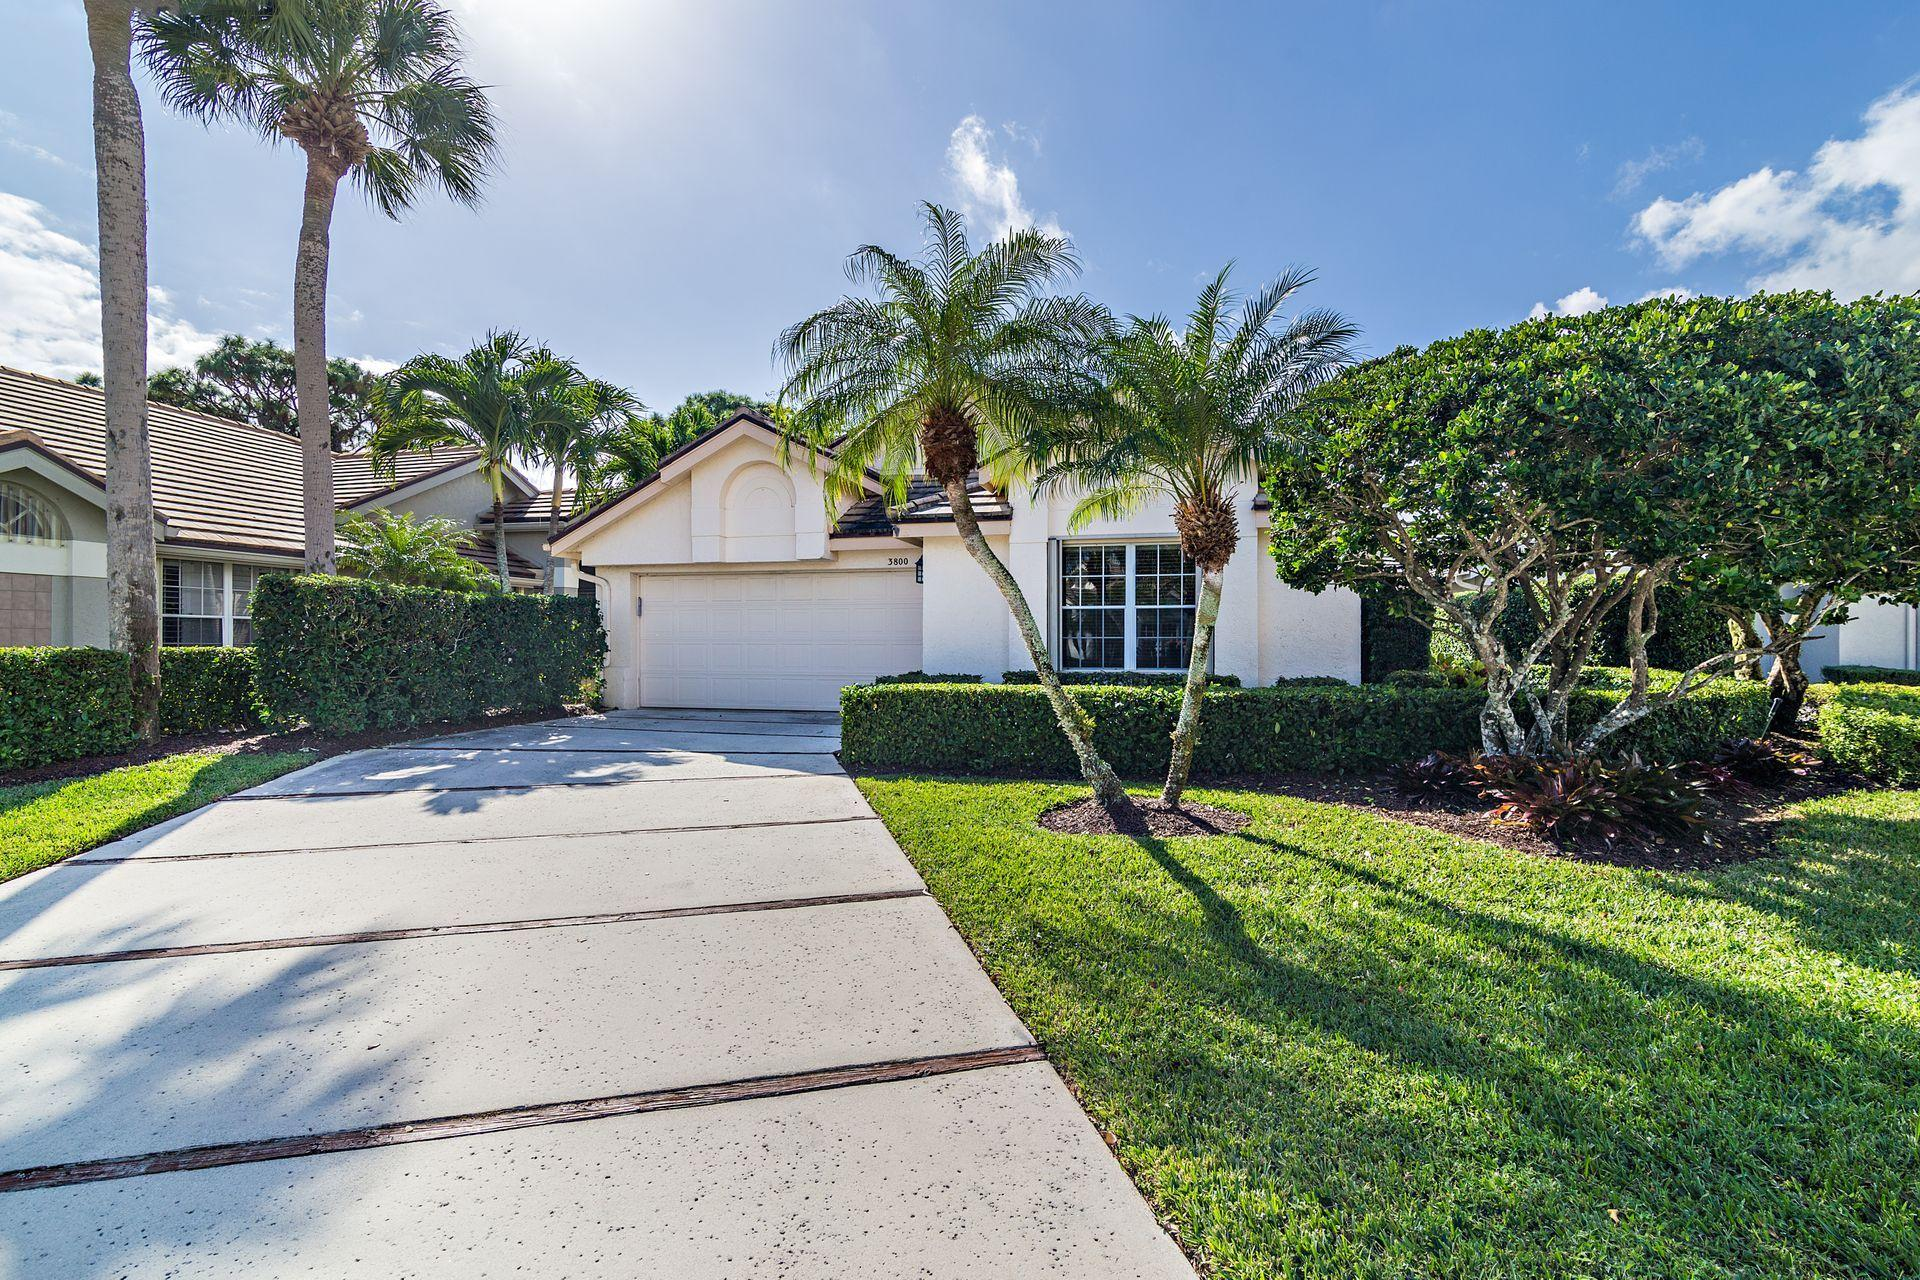 3800 Shearwater Drive, Jupiter, Florida 33477, 3 Bedrooms Bedrooms, ,2.1 BathroomsBathrooms,A,Single family,Shearwater,RX-10605617